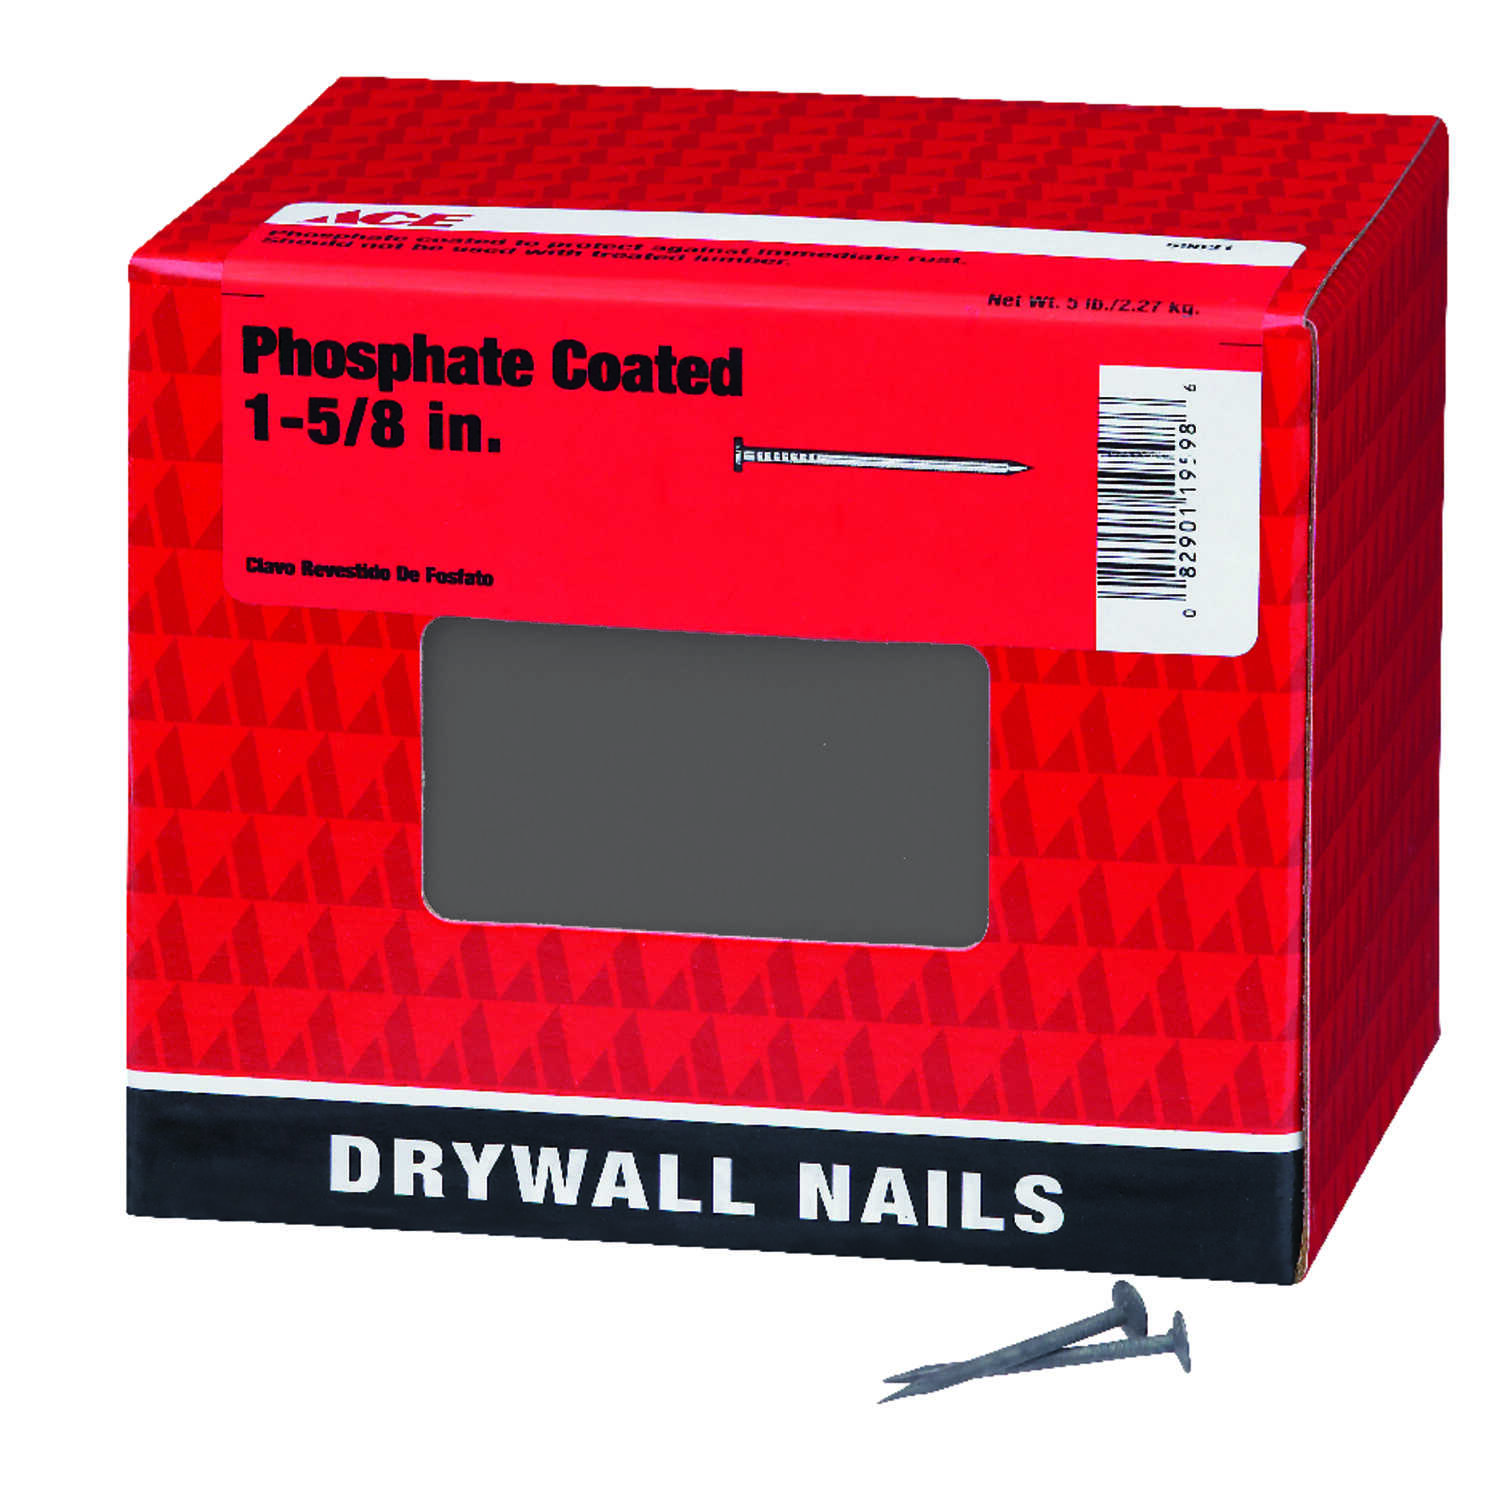 Ace  1-5/8 in. L Drywall  Nail  Smooth Shank  5 lb.